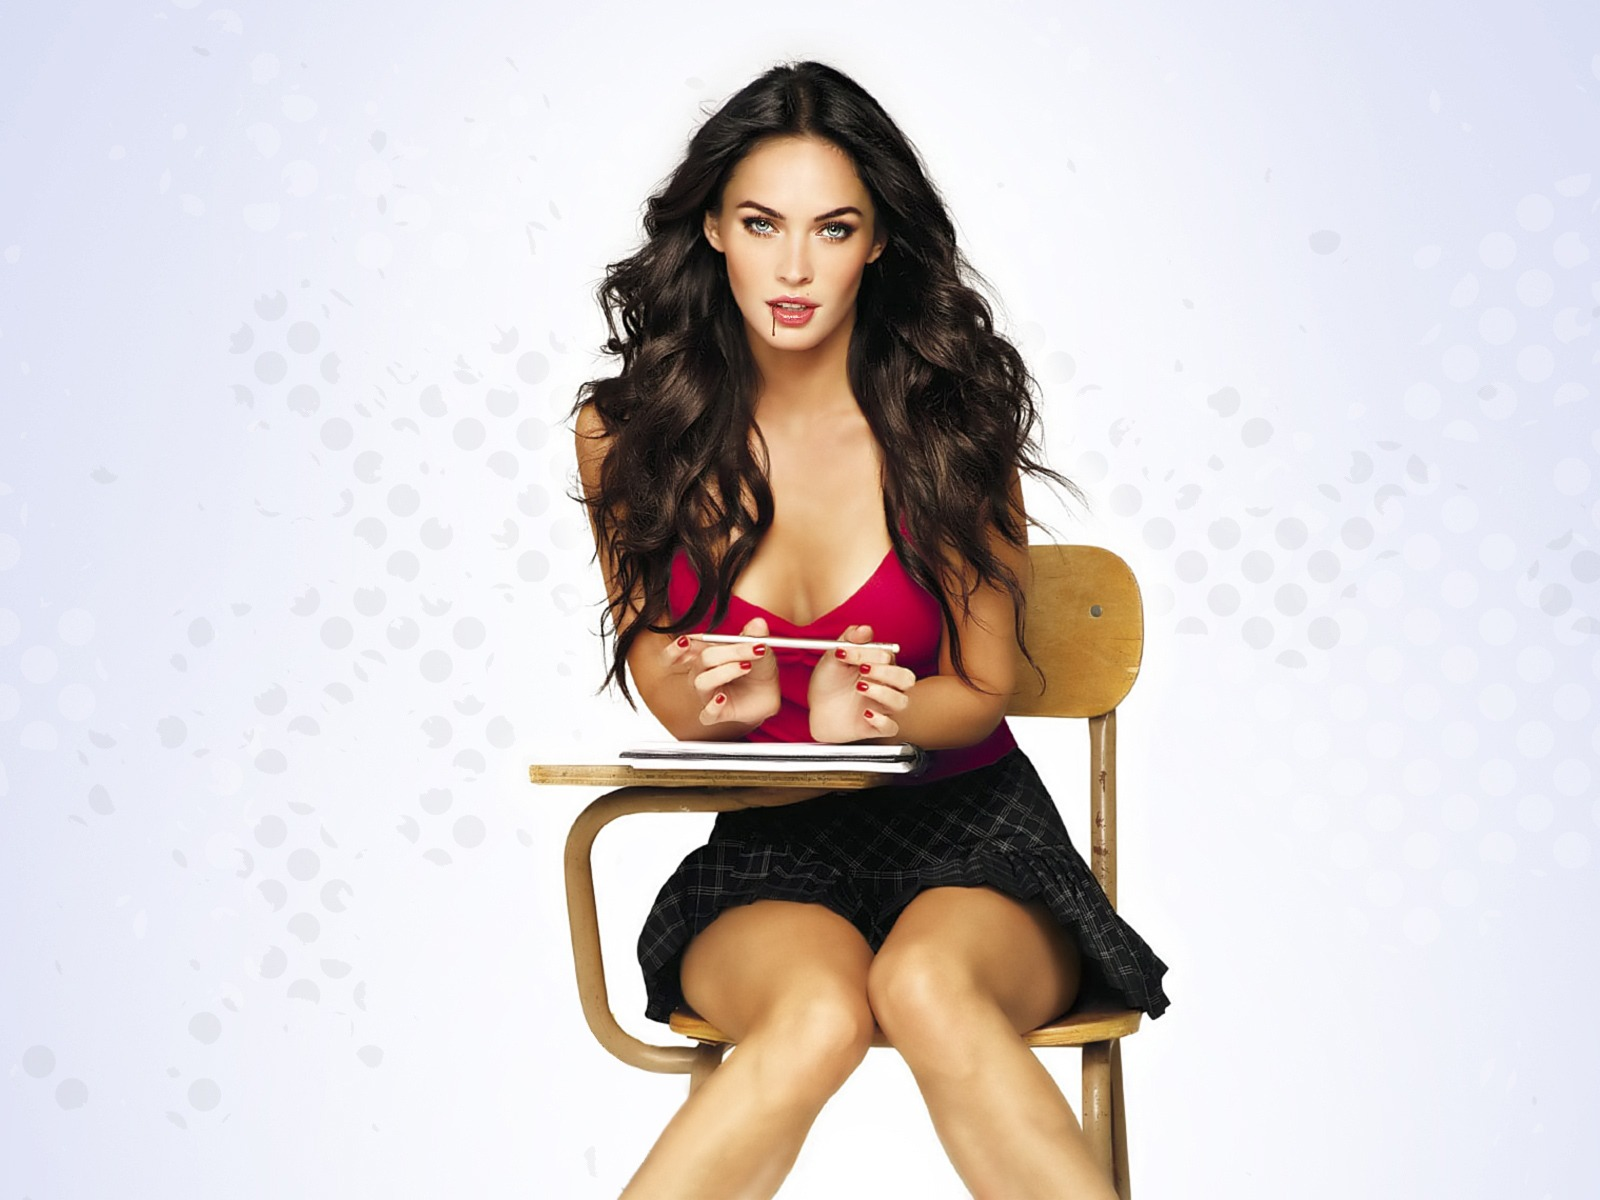 megan-fox-wallpaper-hd | wallpaper.wiki